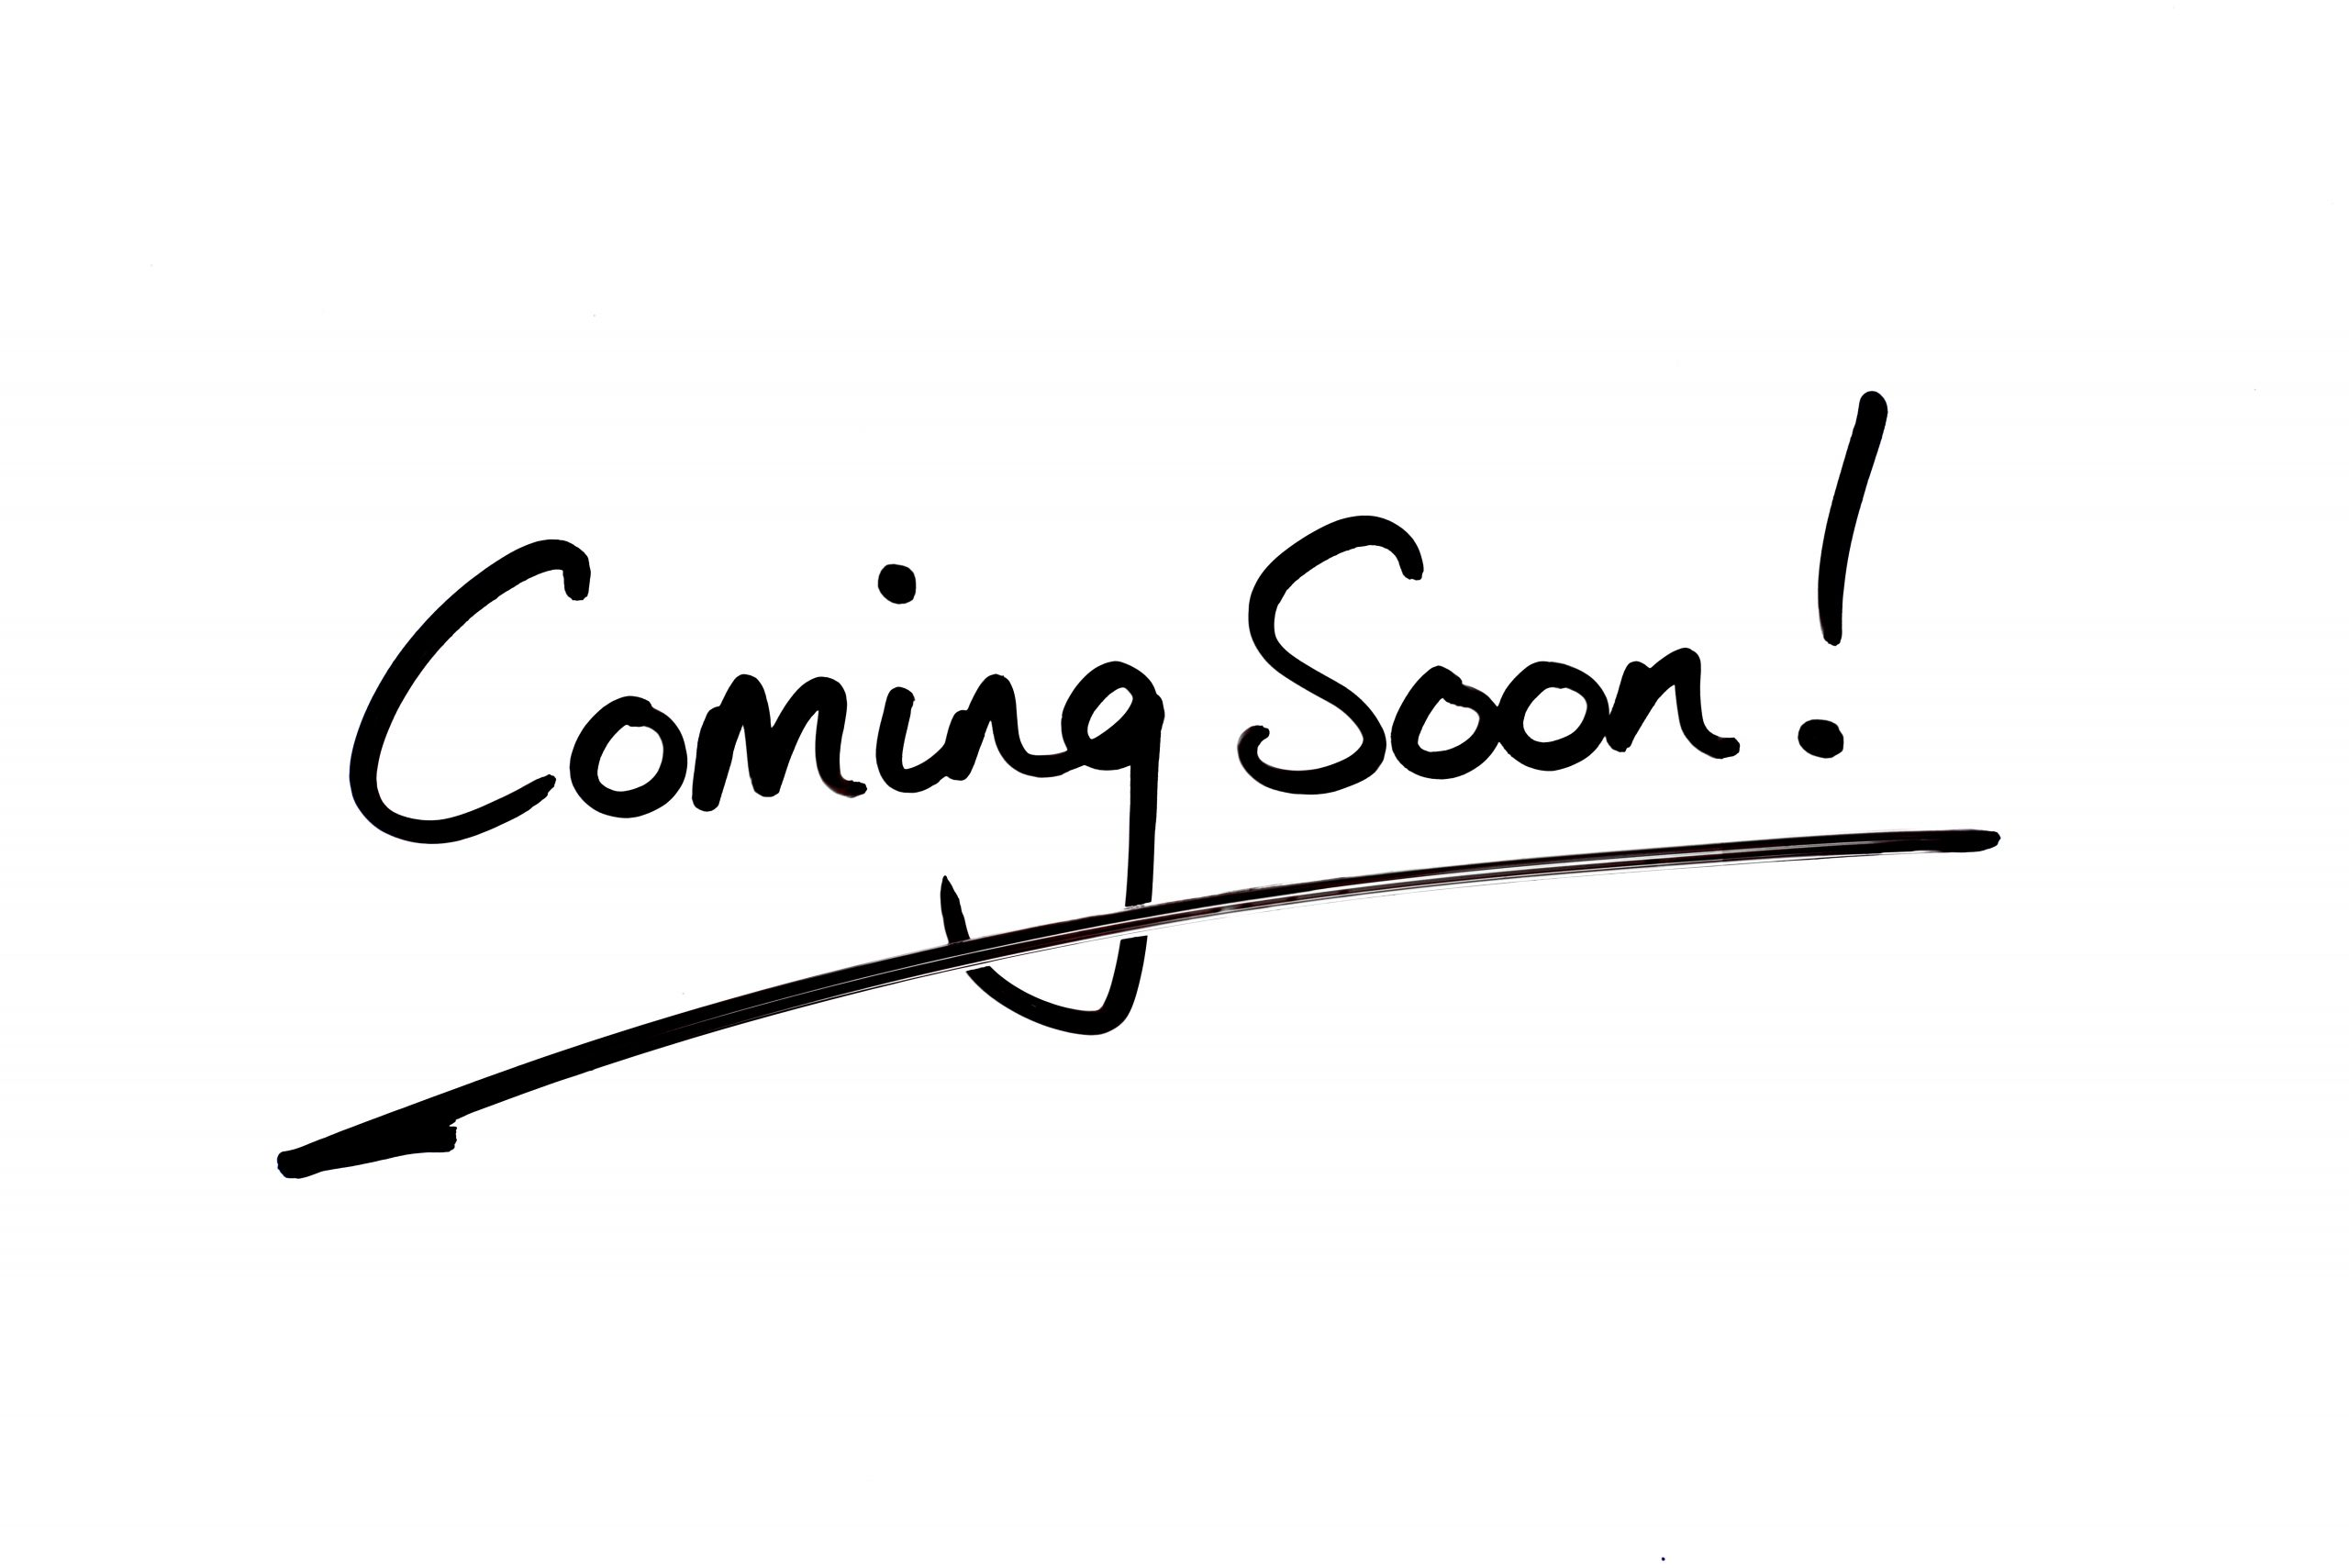 Coming Soon! handwritten on a white background.